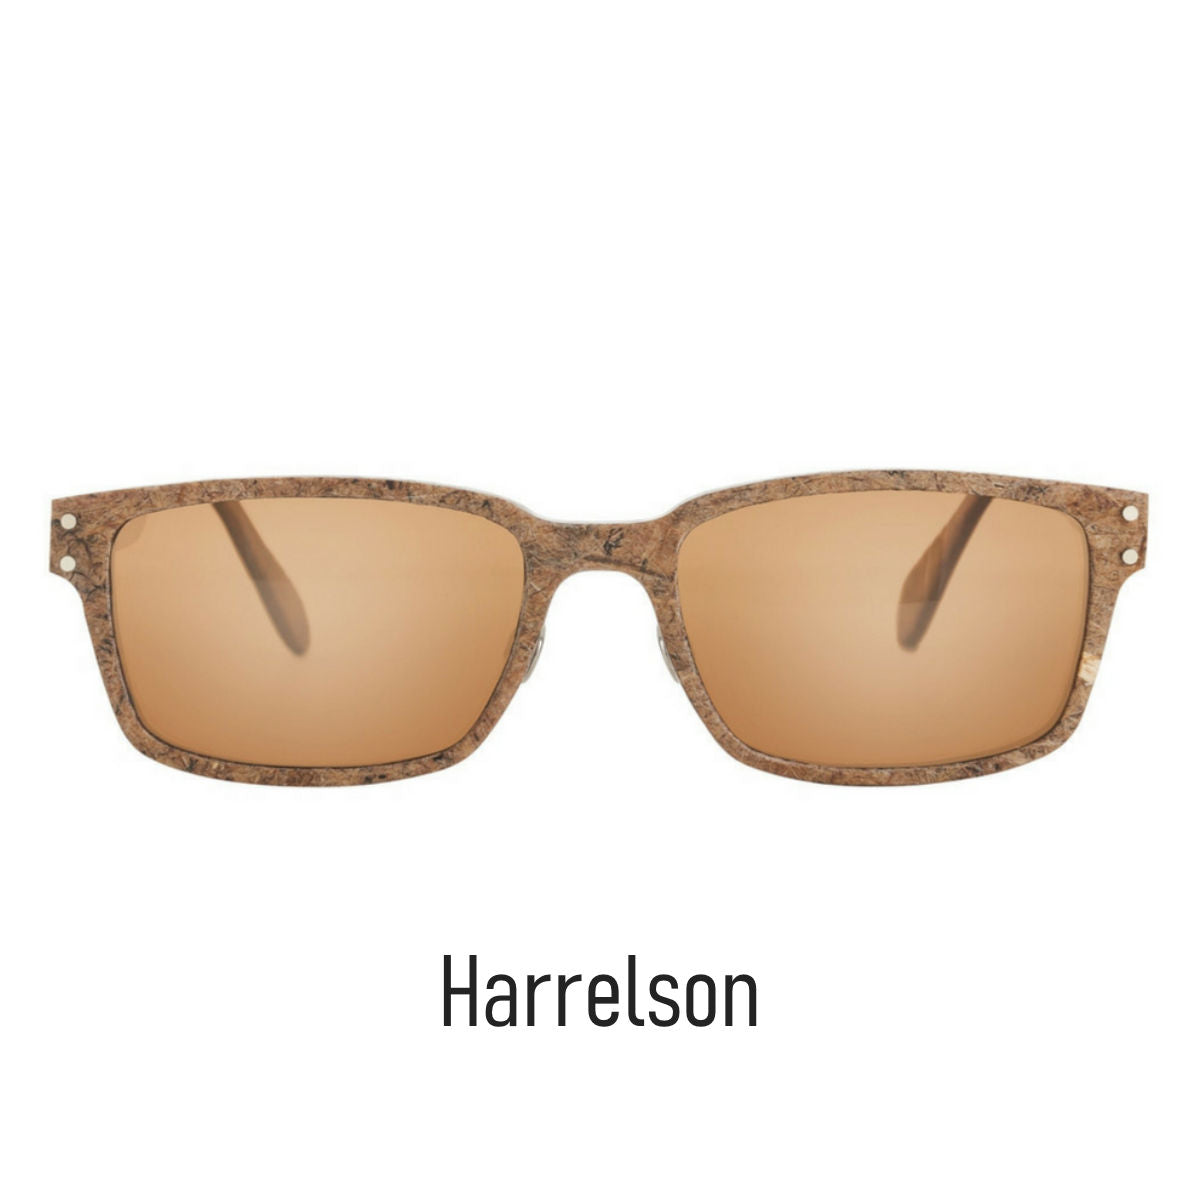 Hemp Eyewear Limited U.S. Release 1st Hemp Sunglasses - Harrelson